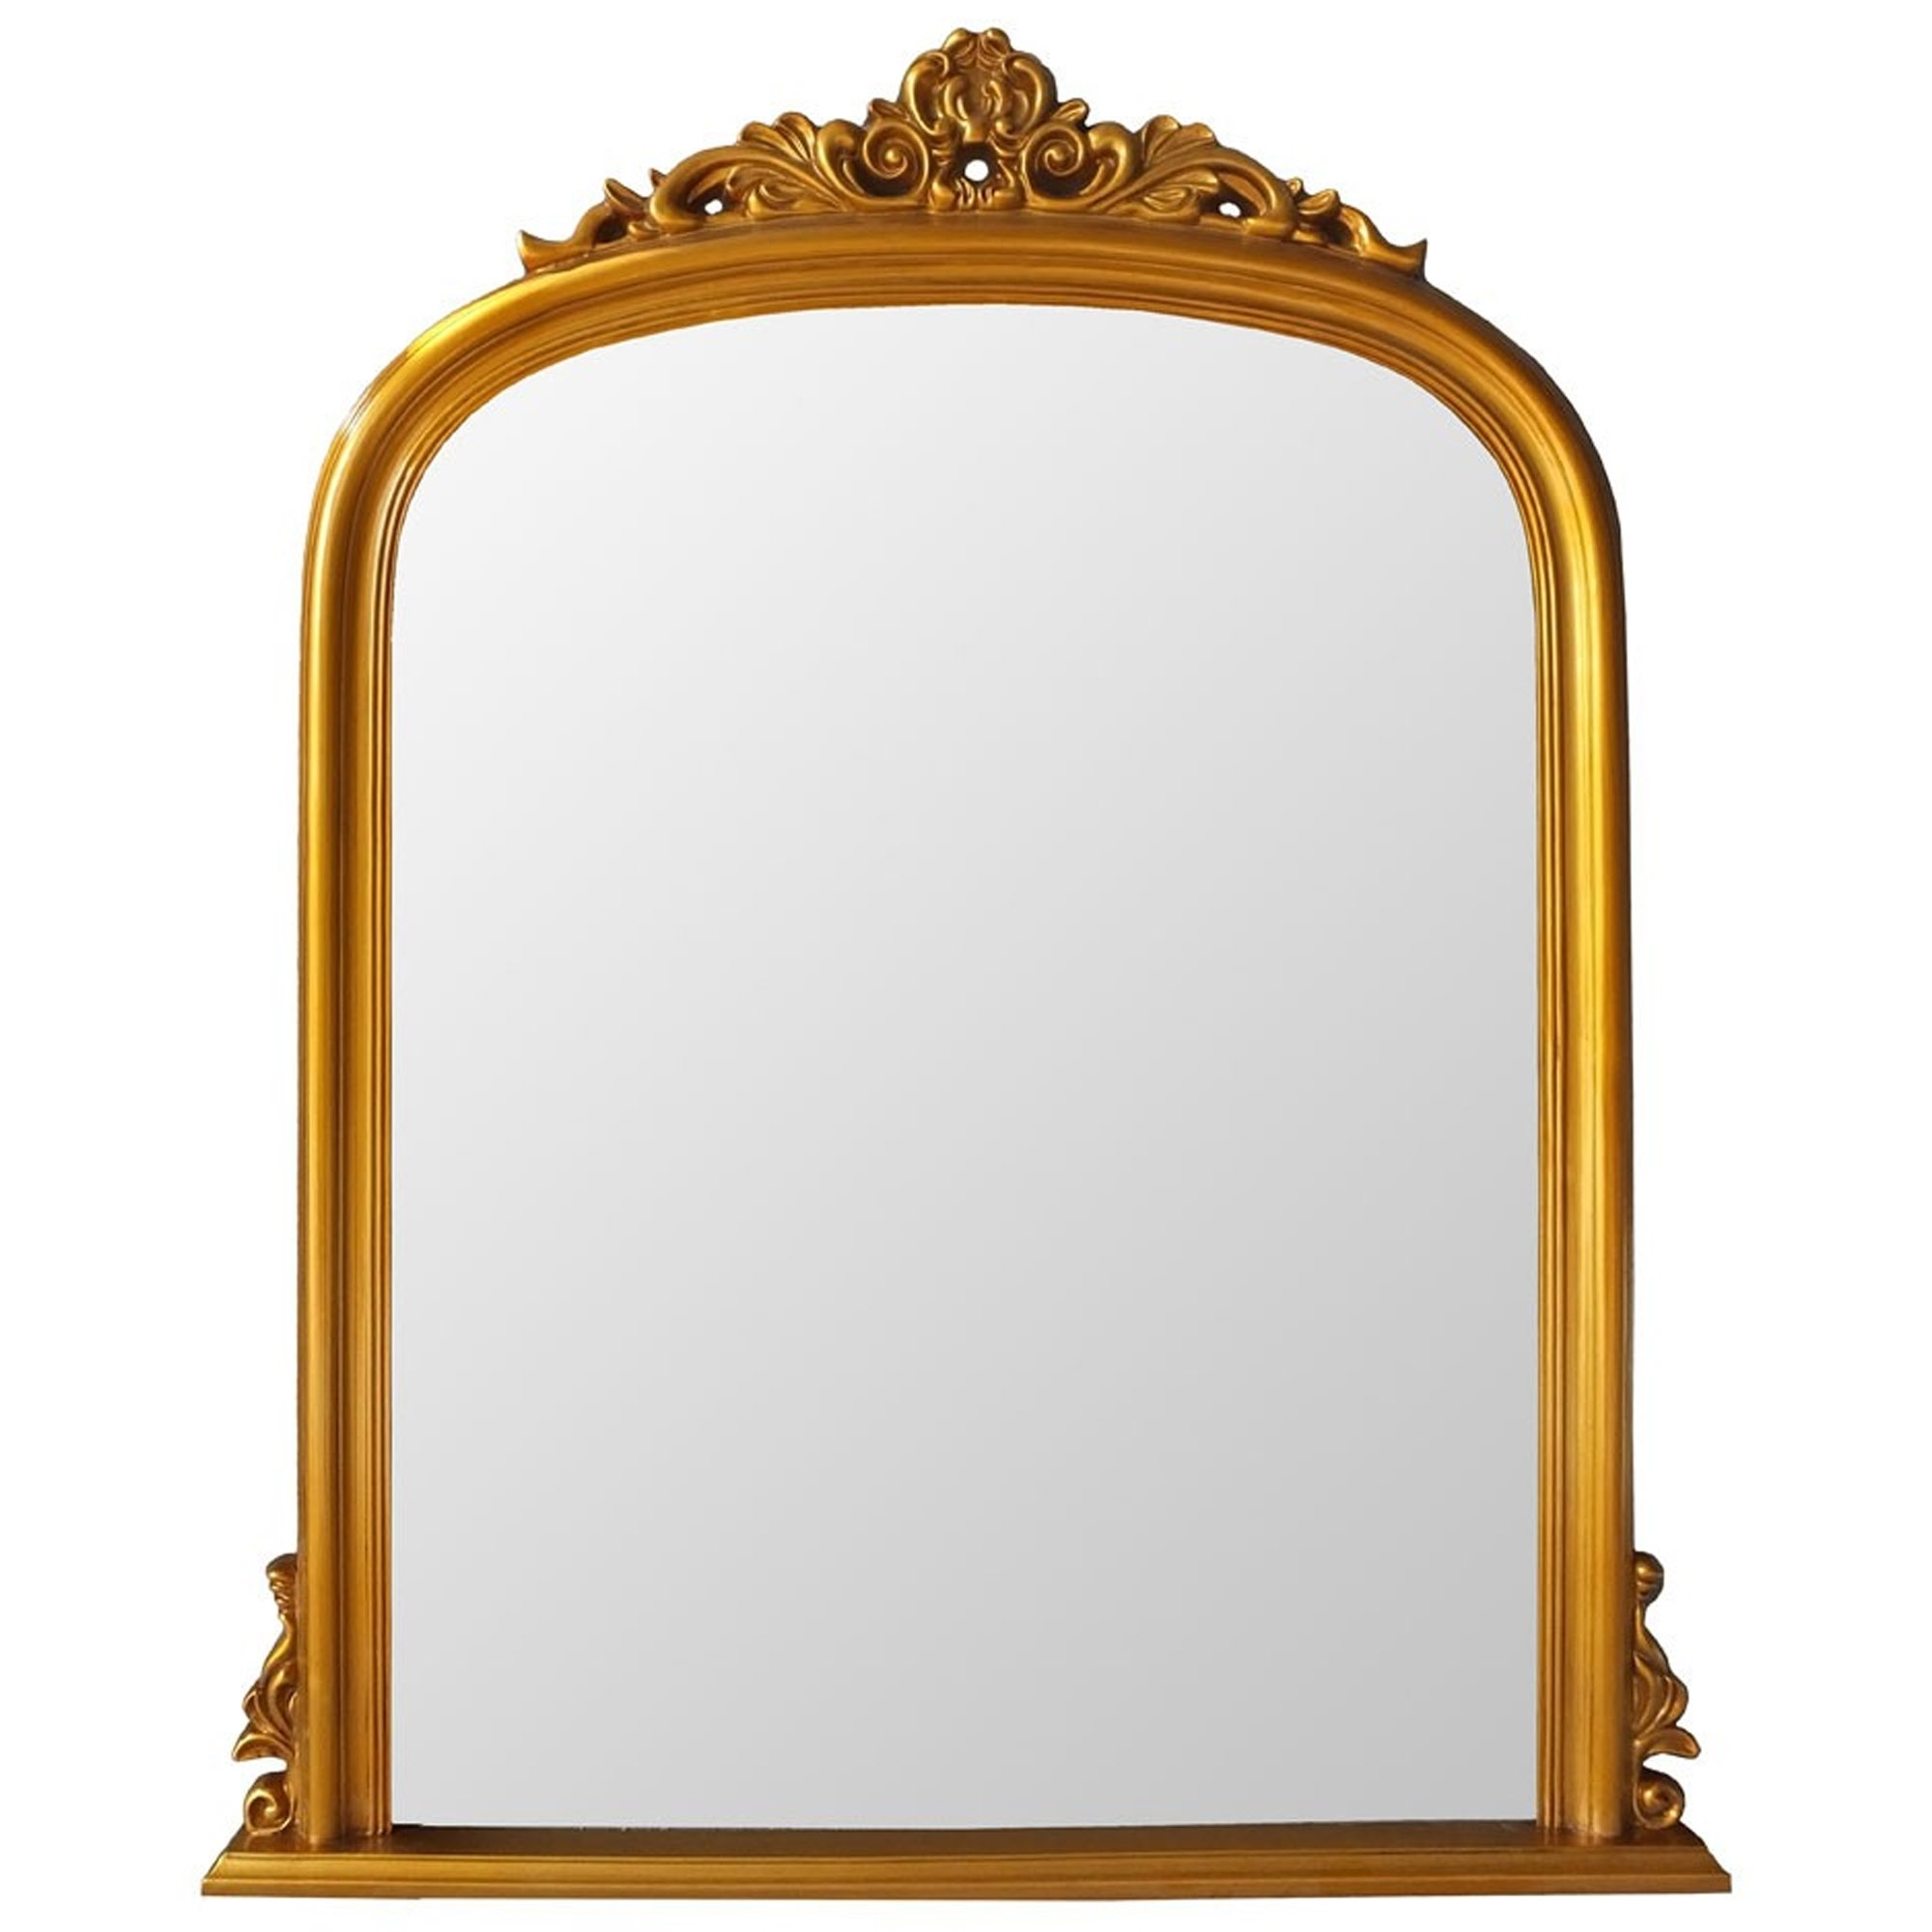 Antique French Style Gold Henrietta Wall Mirror In Gold Arch Wall Mirrors (View 4 of 30)